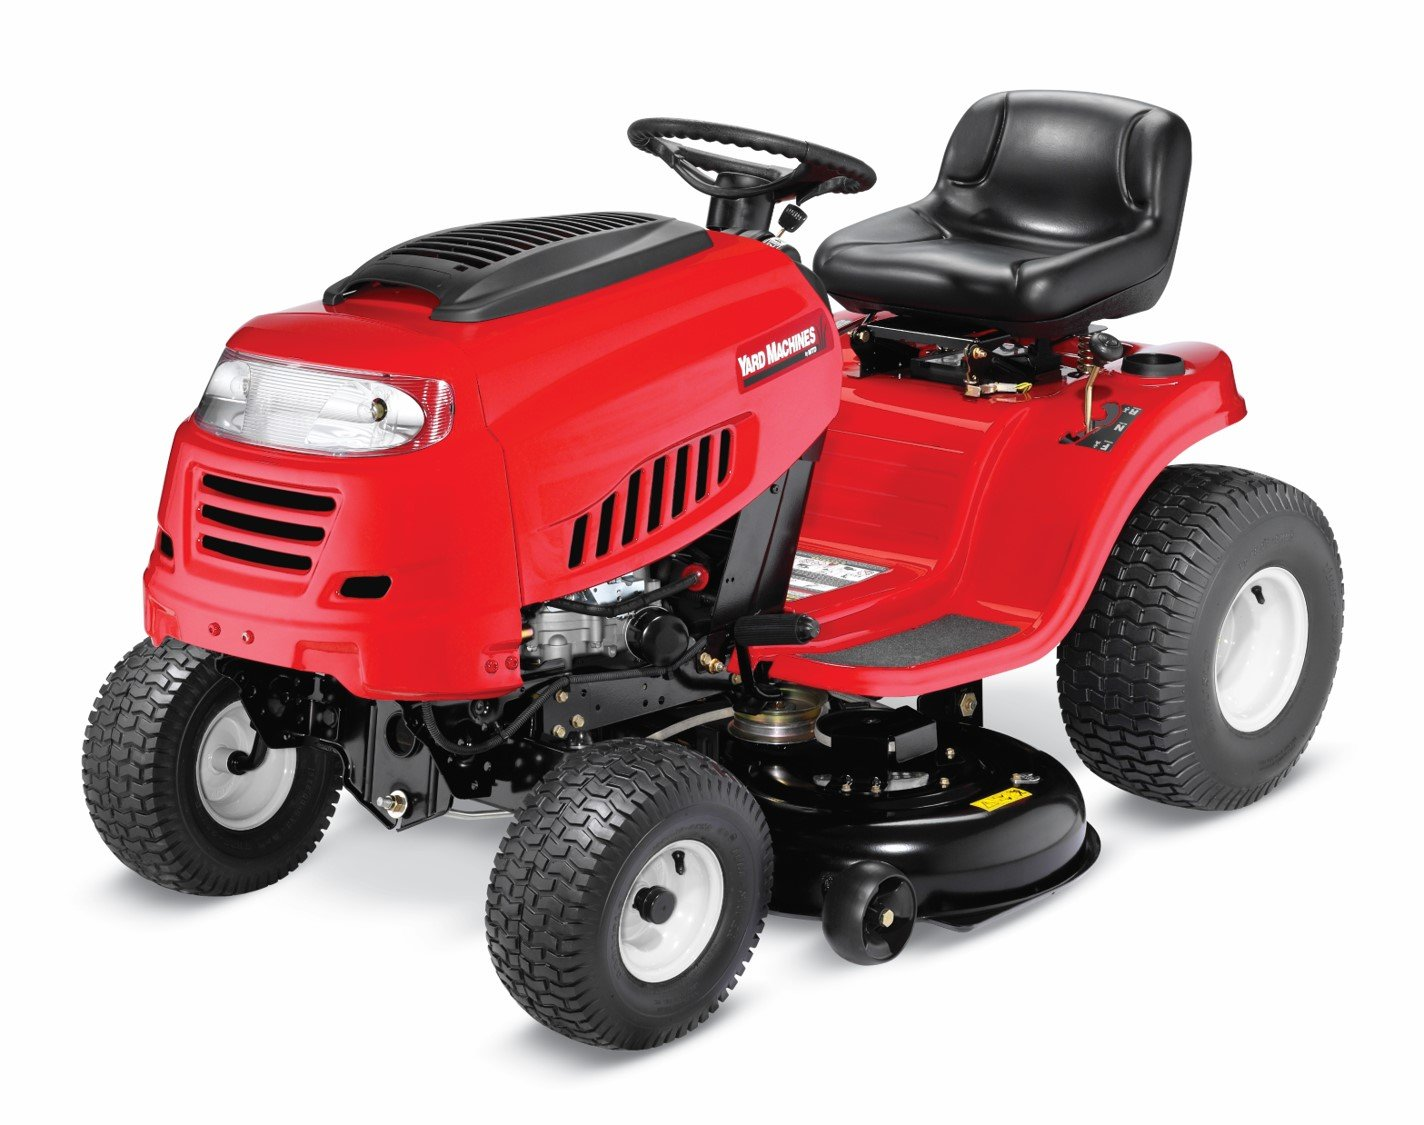 Ariens 915223 Zero Turn Mower 23hp Kawasaki FR691 Series